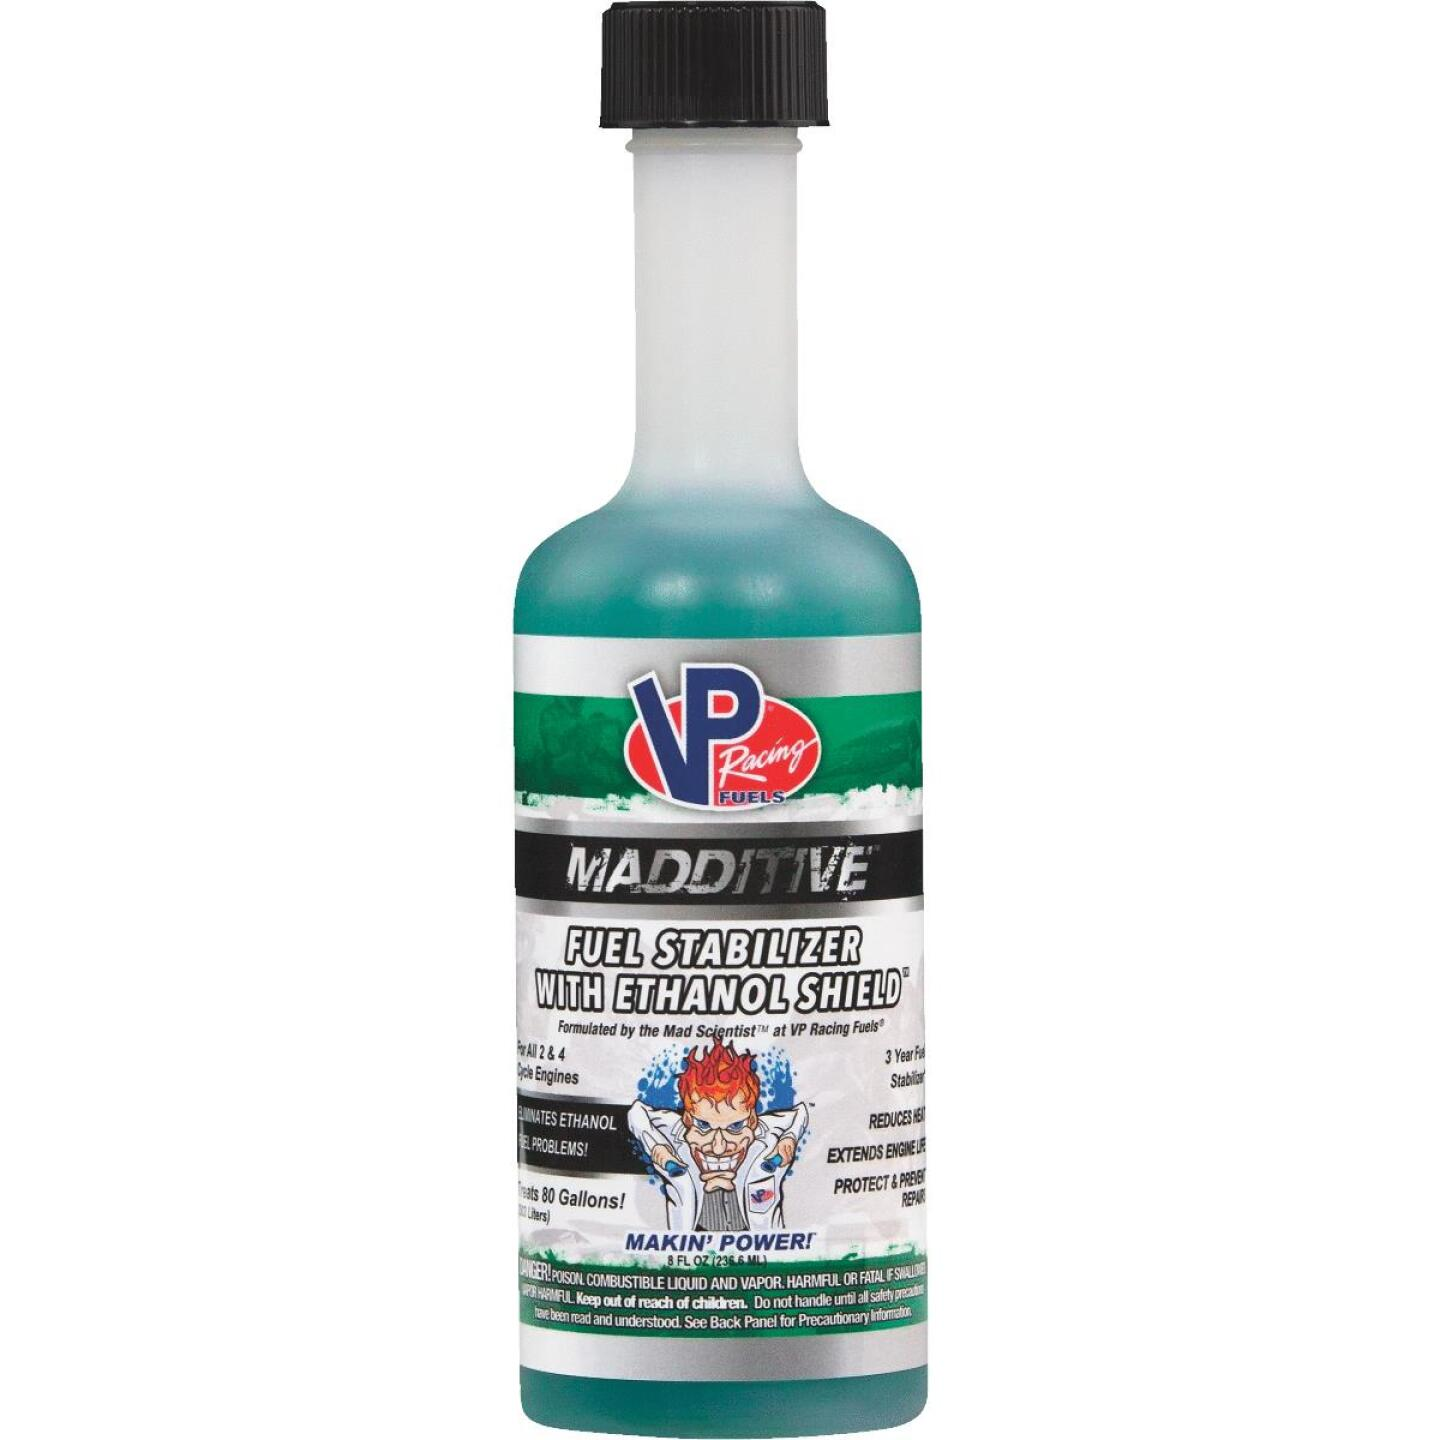 VP Racing Fuels MADDITIVE 8 Fl. Oz. Fuel Stabilizer Image 1